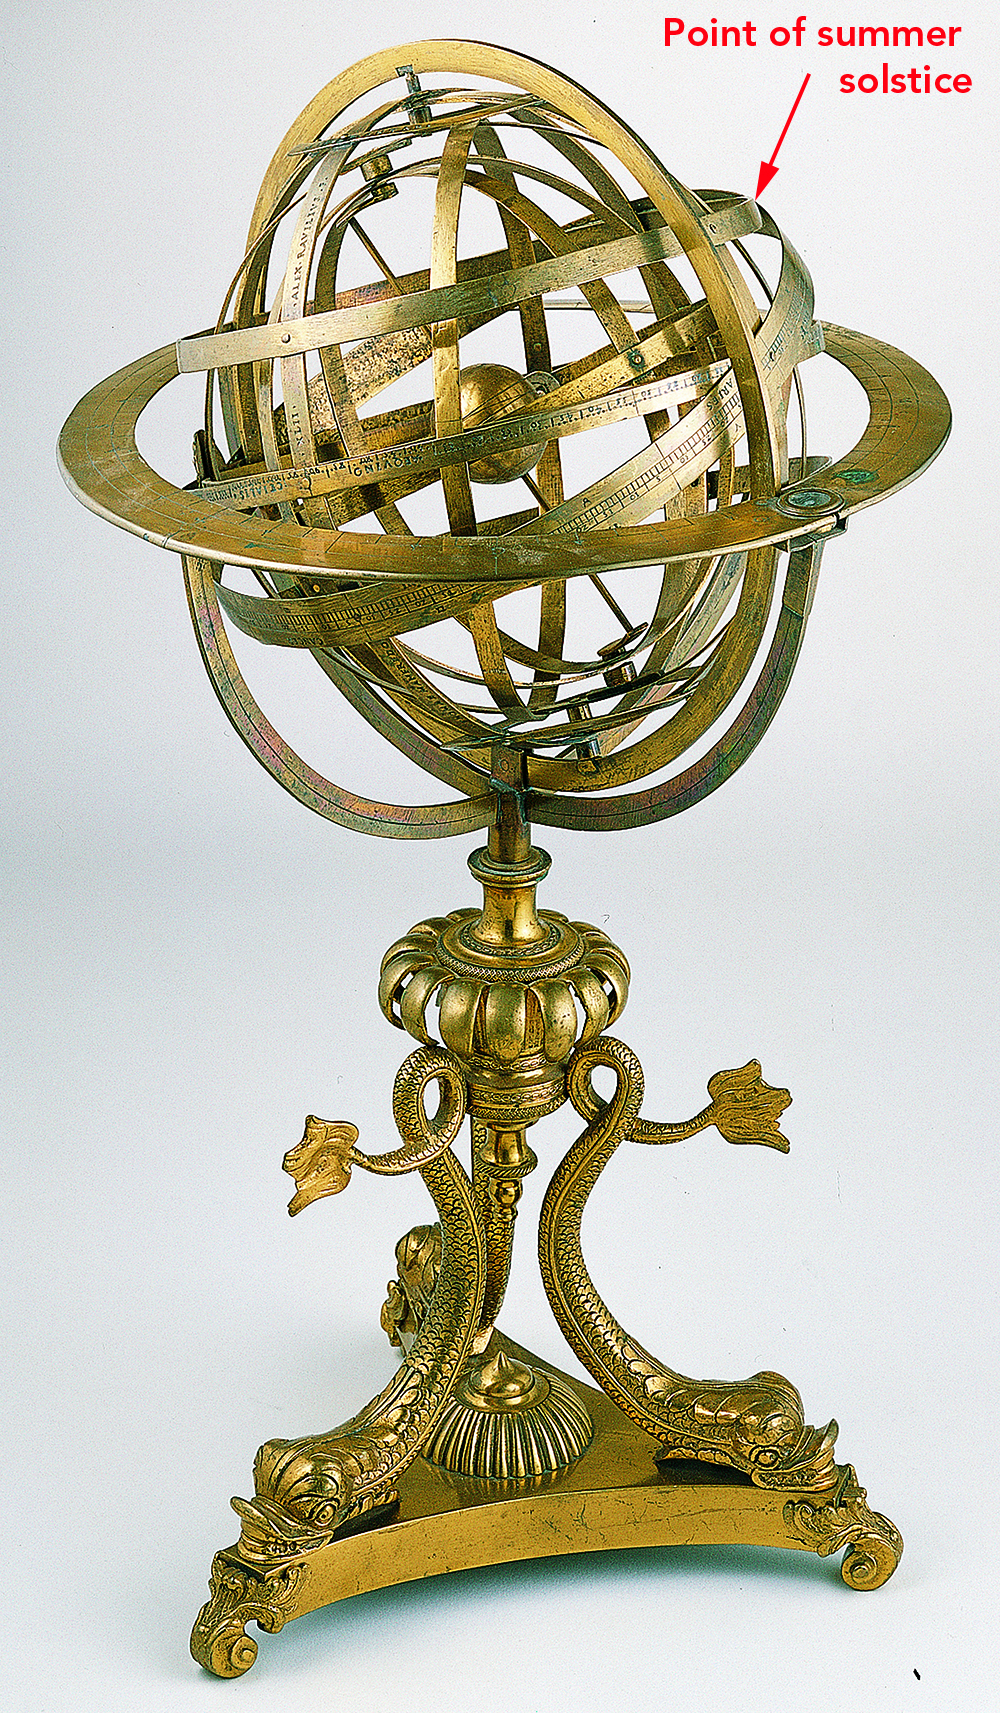 Figure 1:On an armillary sphere, the summer solstice is the place in the zodiac band that is farthest north of the ring or band representing the celestial equator.